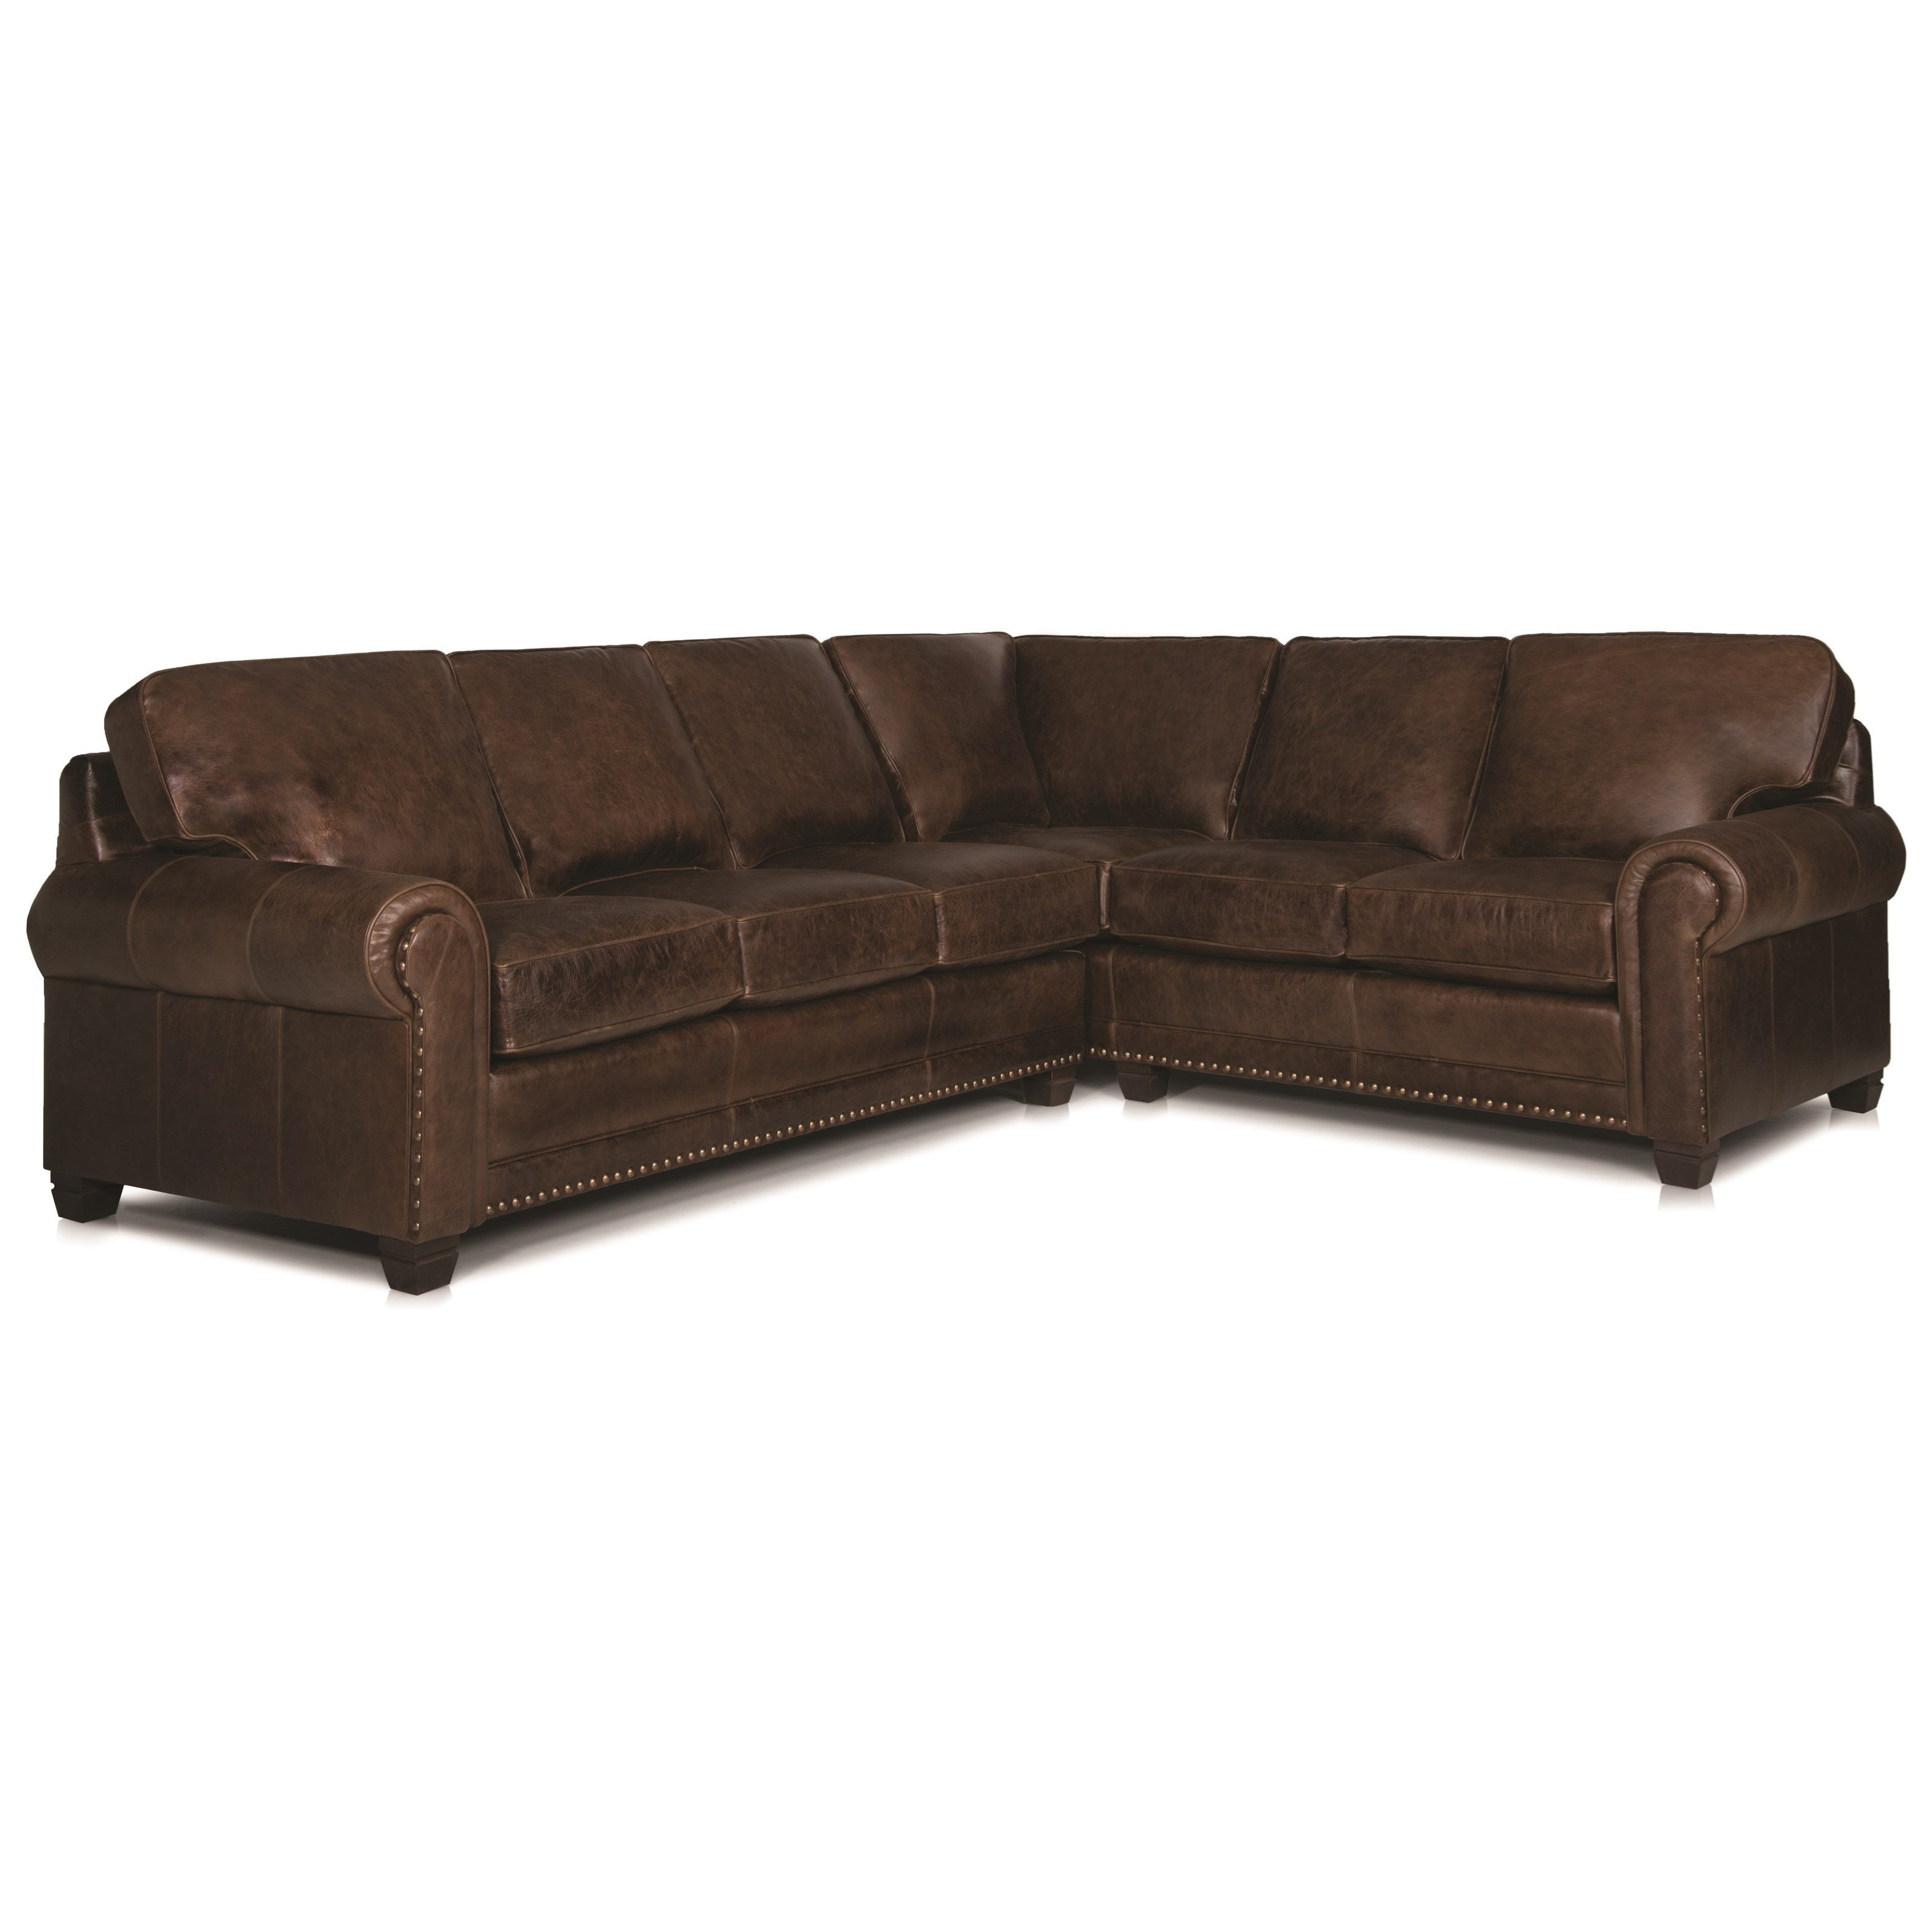 393 Sectional by Smith Brothers at Rooms for Less